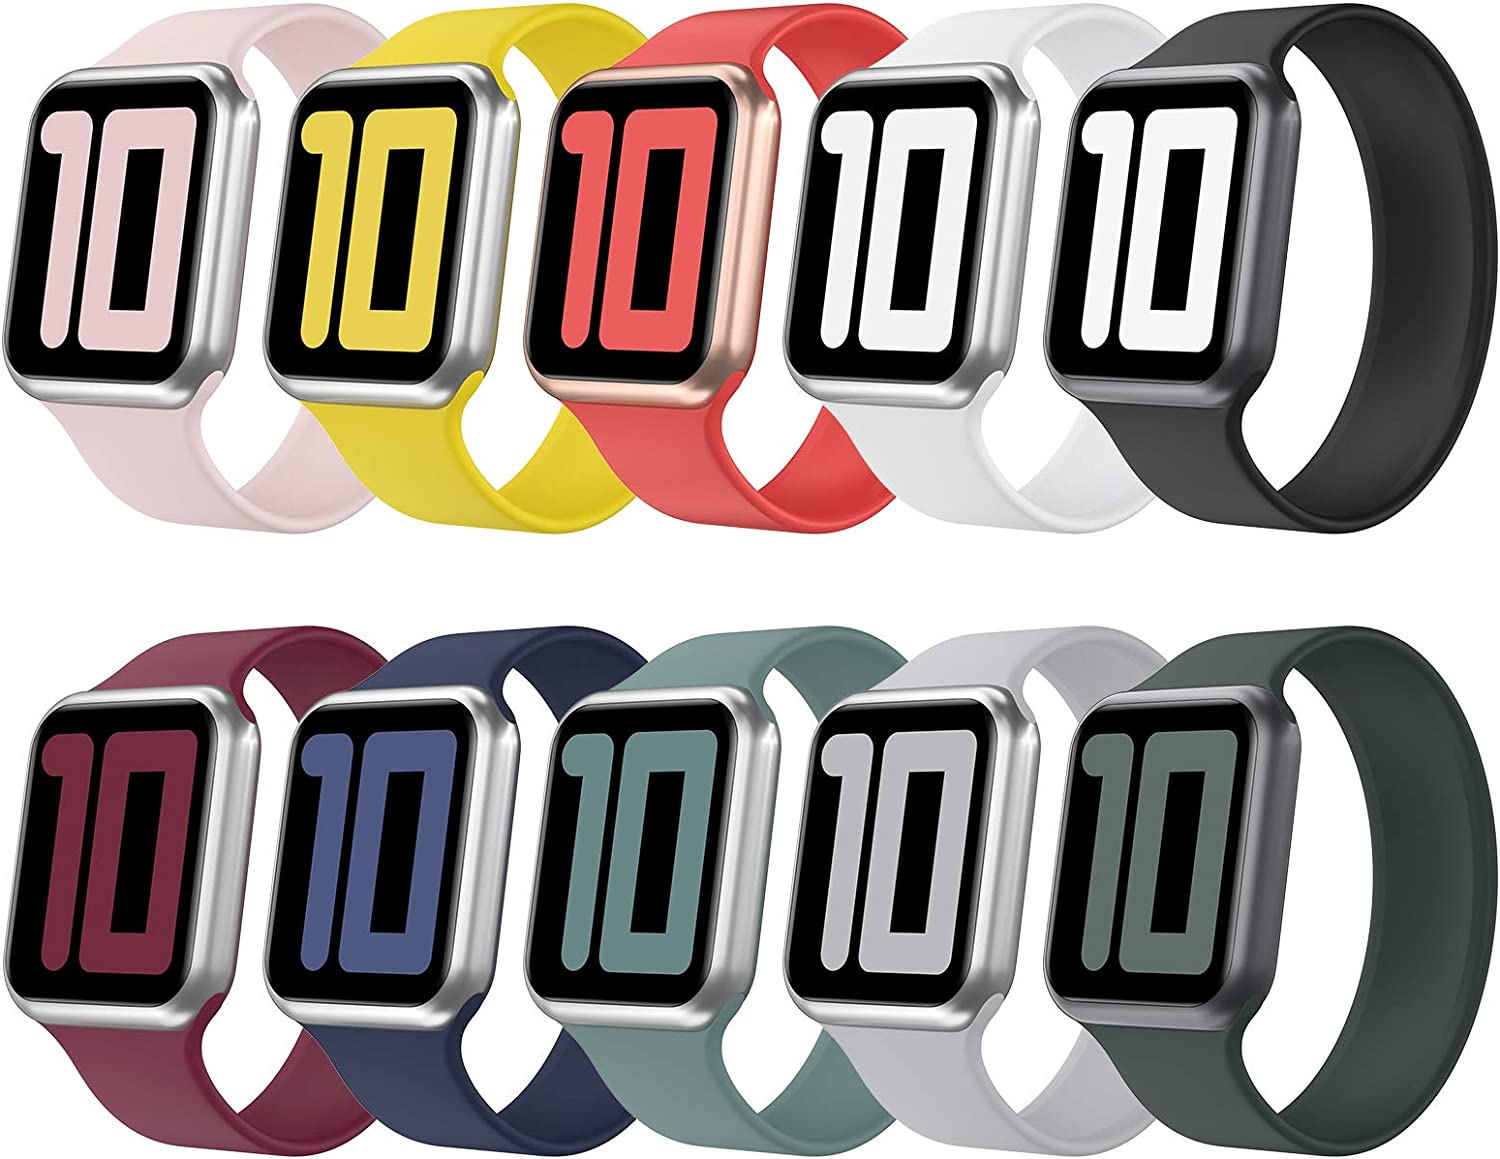 Huishang 10 Pack Solo Loop Strap Compatible with Apple Watch Band 38mm 42mm 40mm 44mm, Silicone Watch Bands, Sport Replacement Wristband for iWatch Series 6/5/4/3/2/1, SE